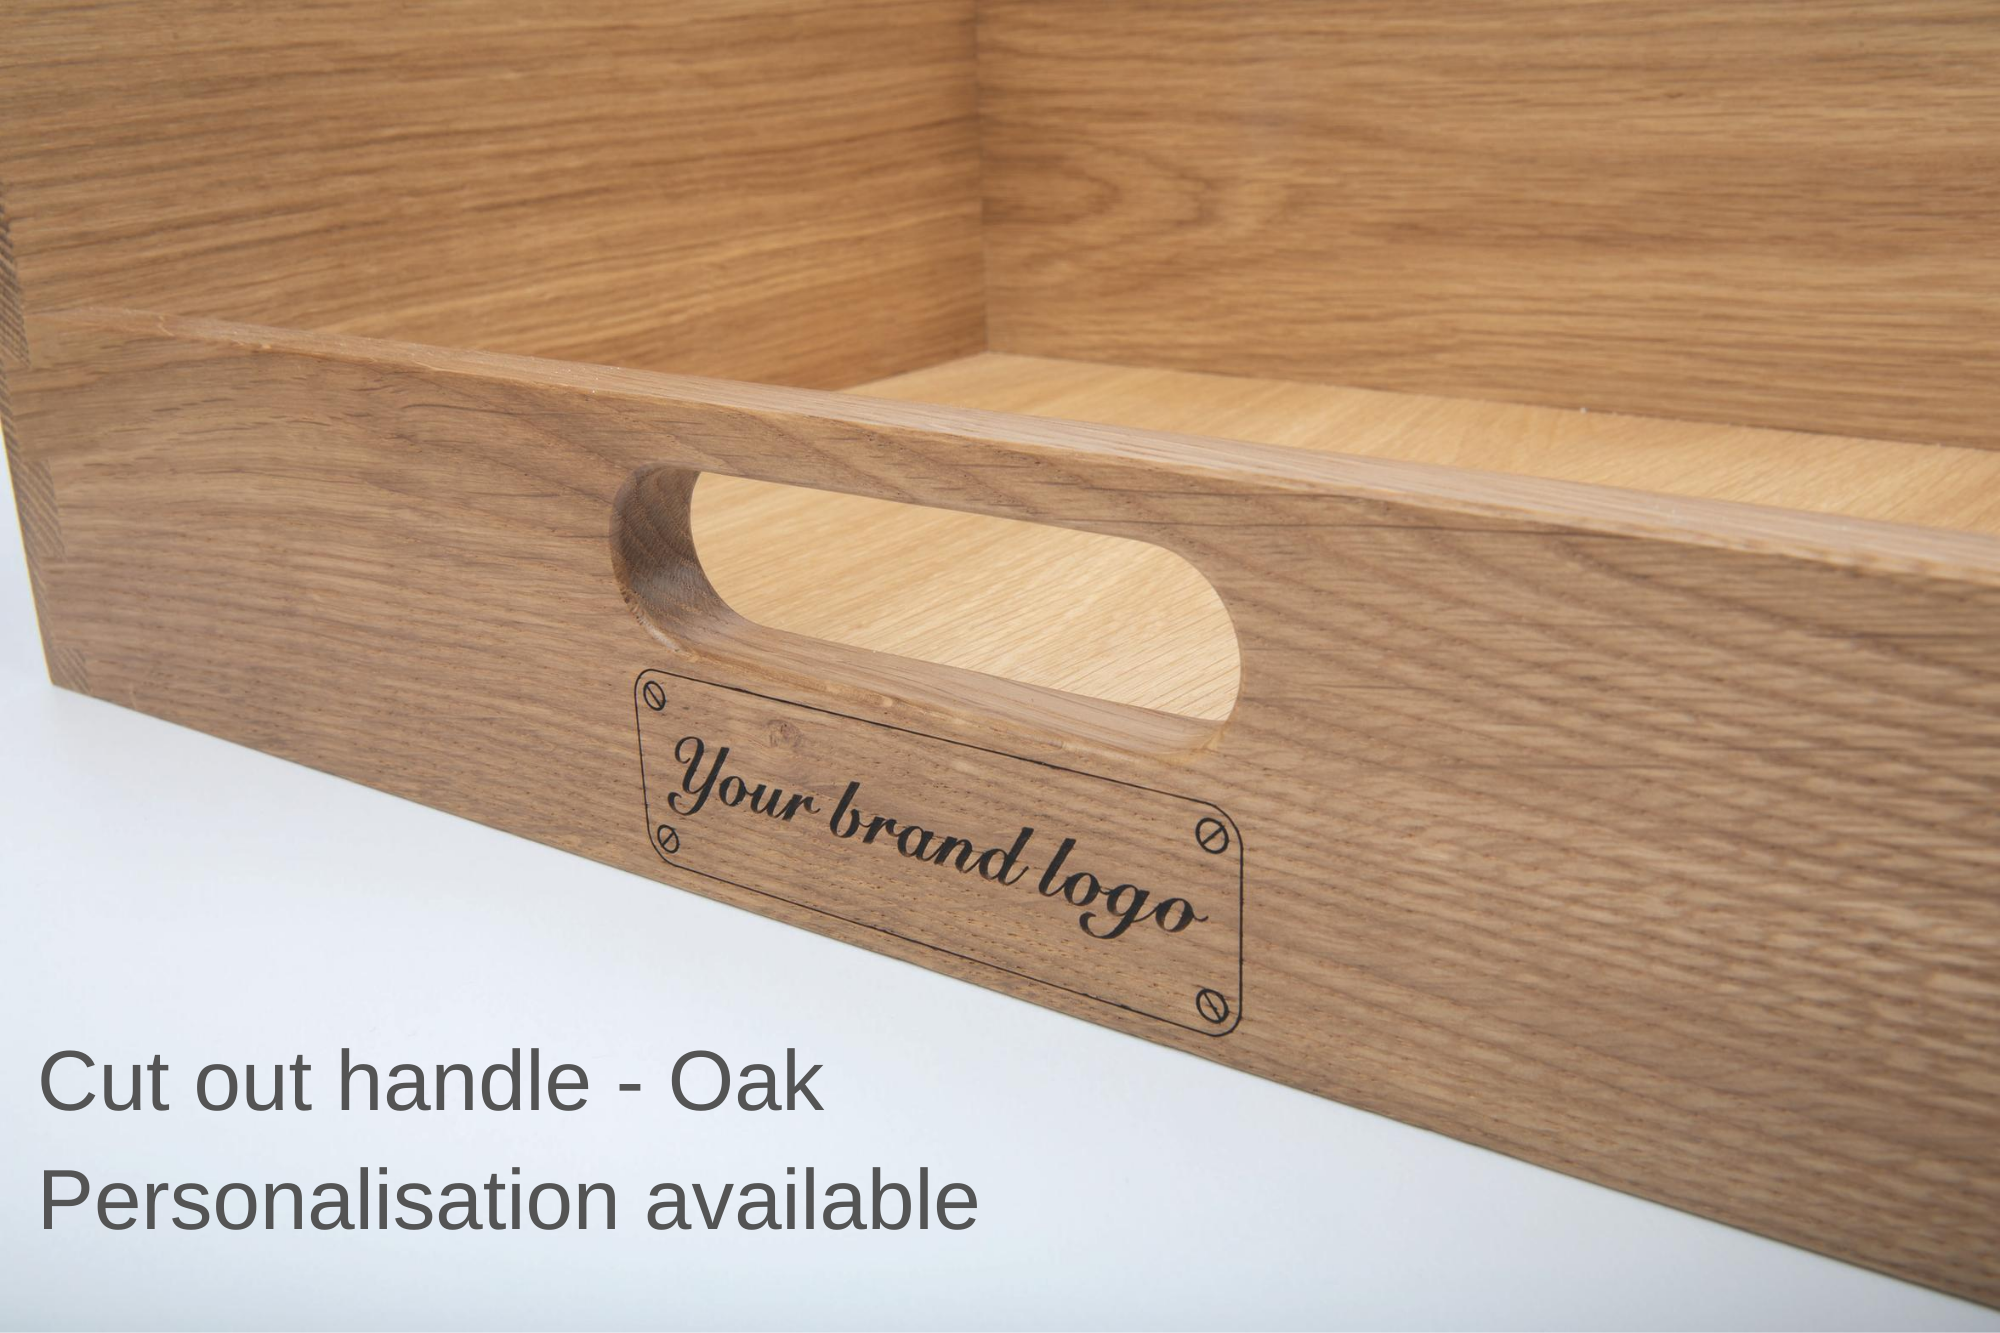 Cut out handle in oak with personalisation